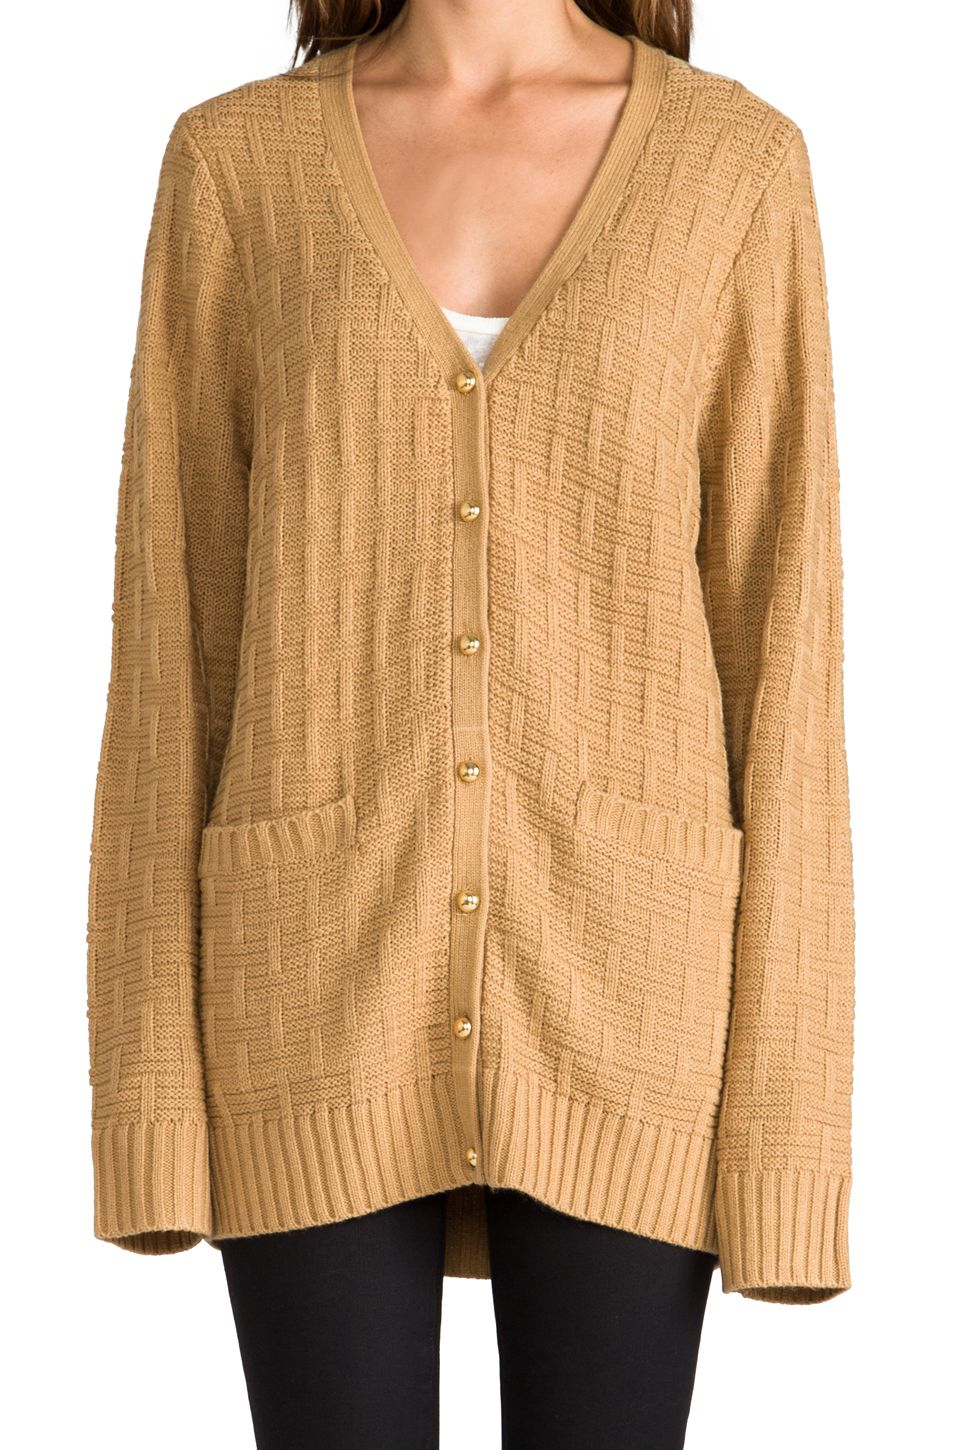 Be Better Cardigan in Rugby Tan